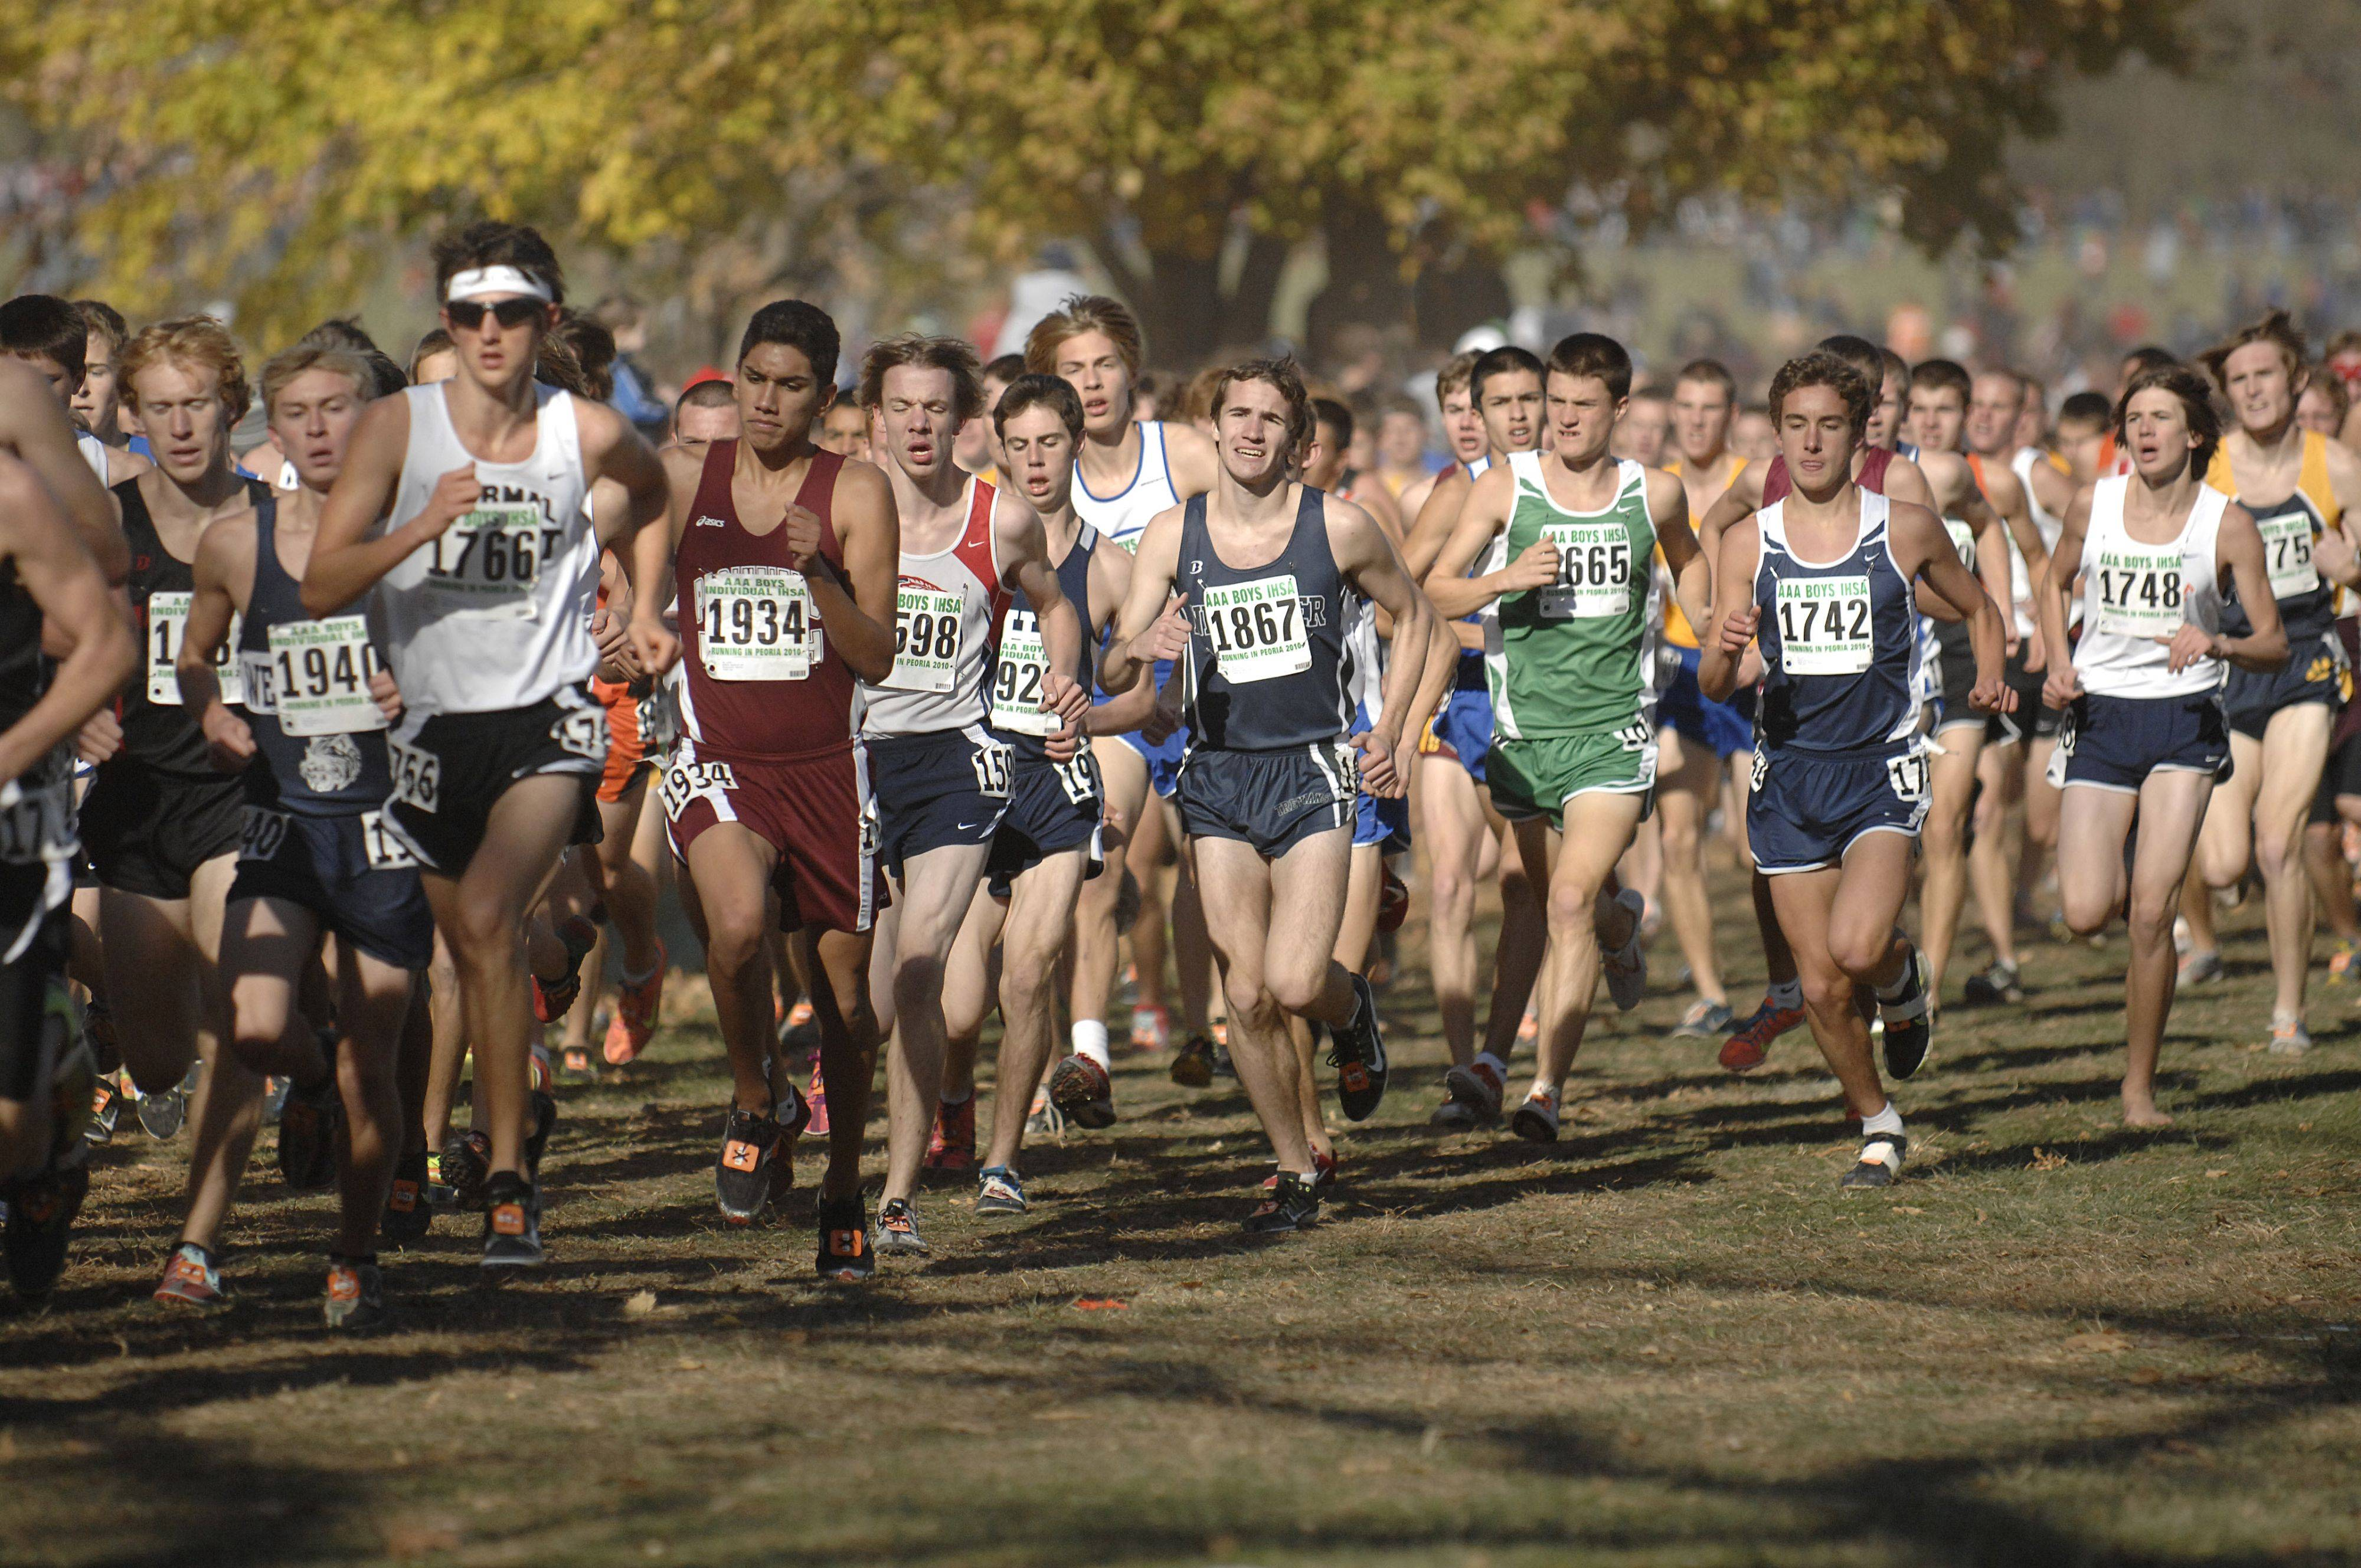 The 3A class of the state cross country meet at Detweiller Park in Peoria on Saturday, November 6.